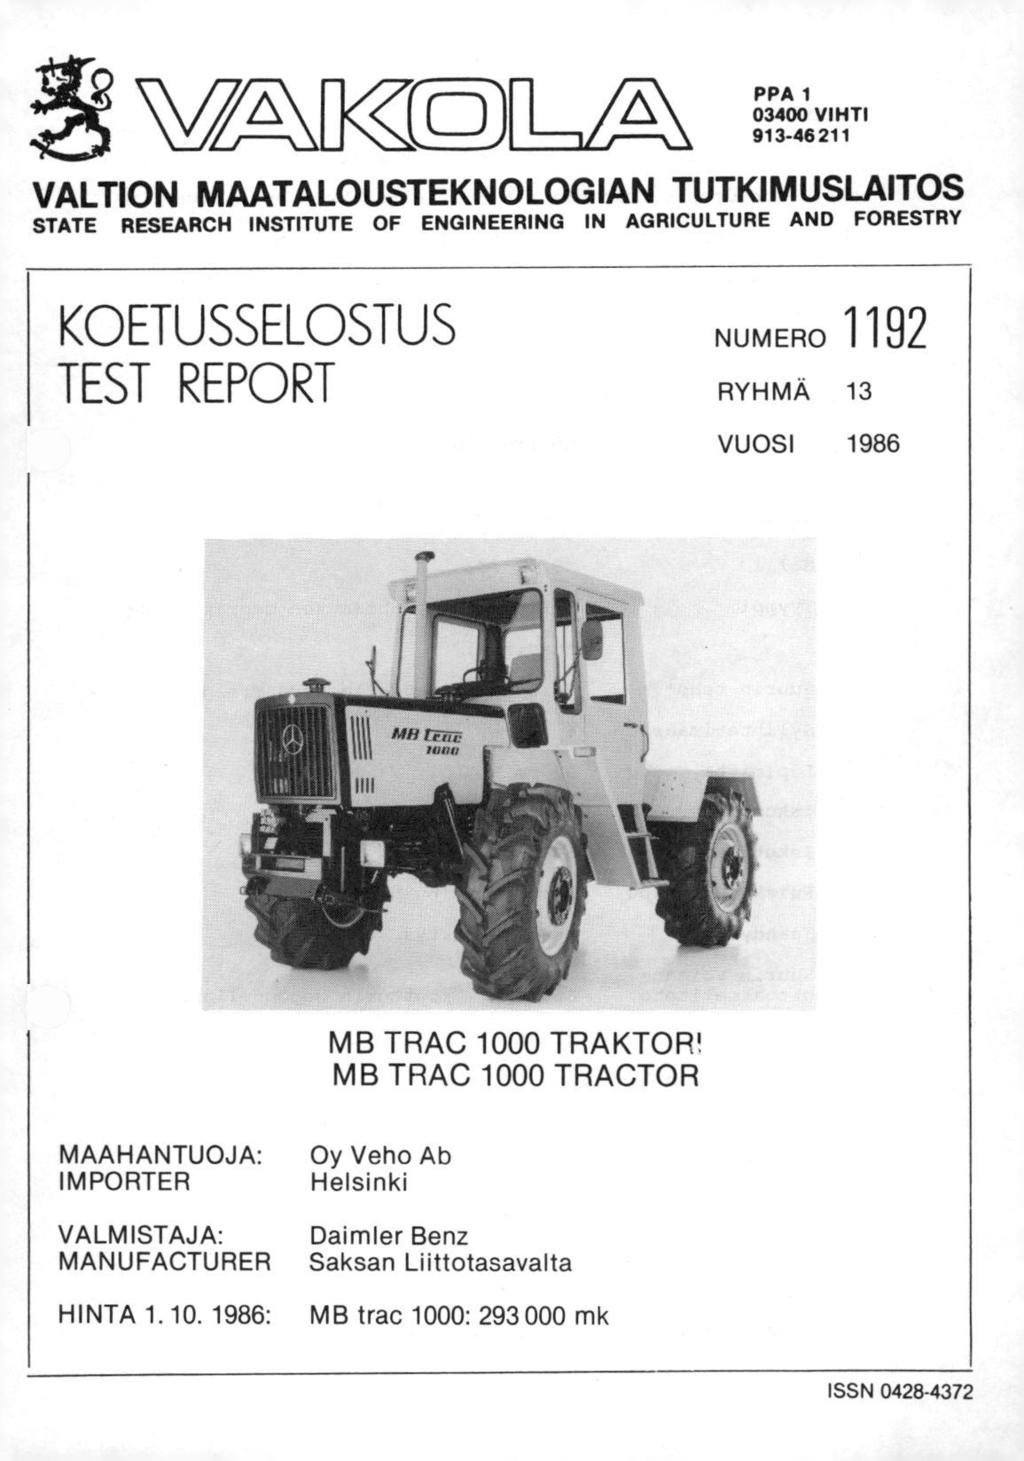 PPA 1 03400 VIHTI 913-46211 VALTION MAATALOUSTEKNOLOGIAN TUTKIMUSLAITOS STATE RESEARCH INSTITUTE OF ENGINEERING IN AGRICULTURE AND FORESTRY KOETUSSELOSTUS TEST REPORT NUMERO 1192 RYHMÄ 13 VUOSI 1986